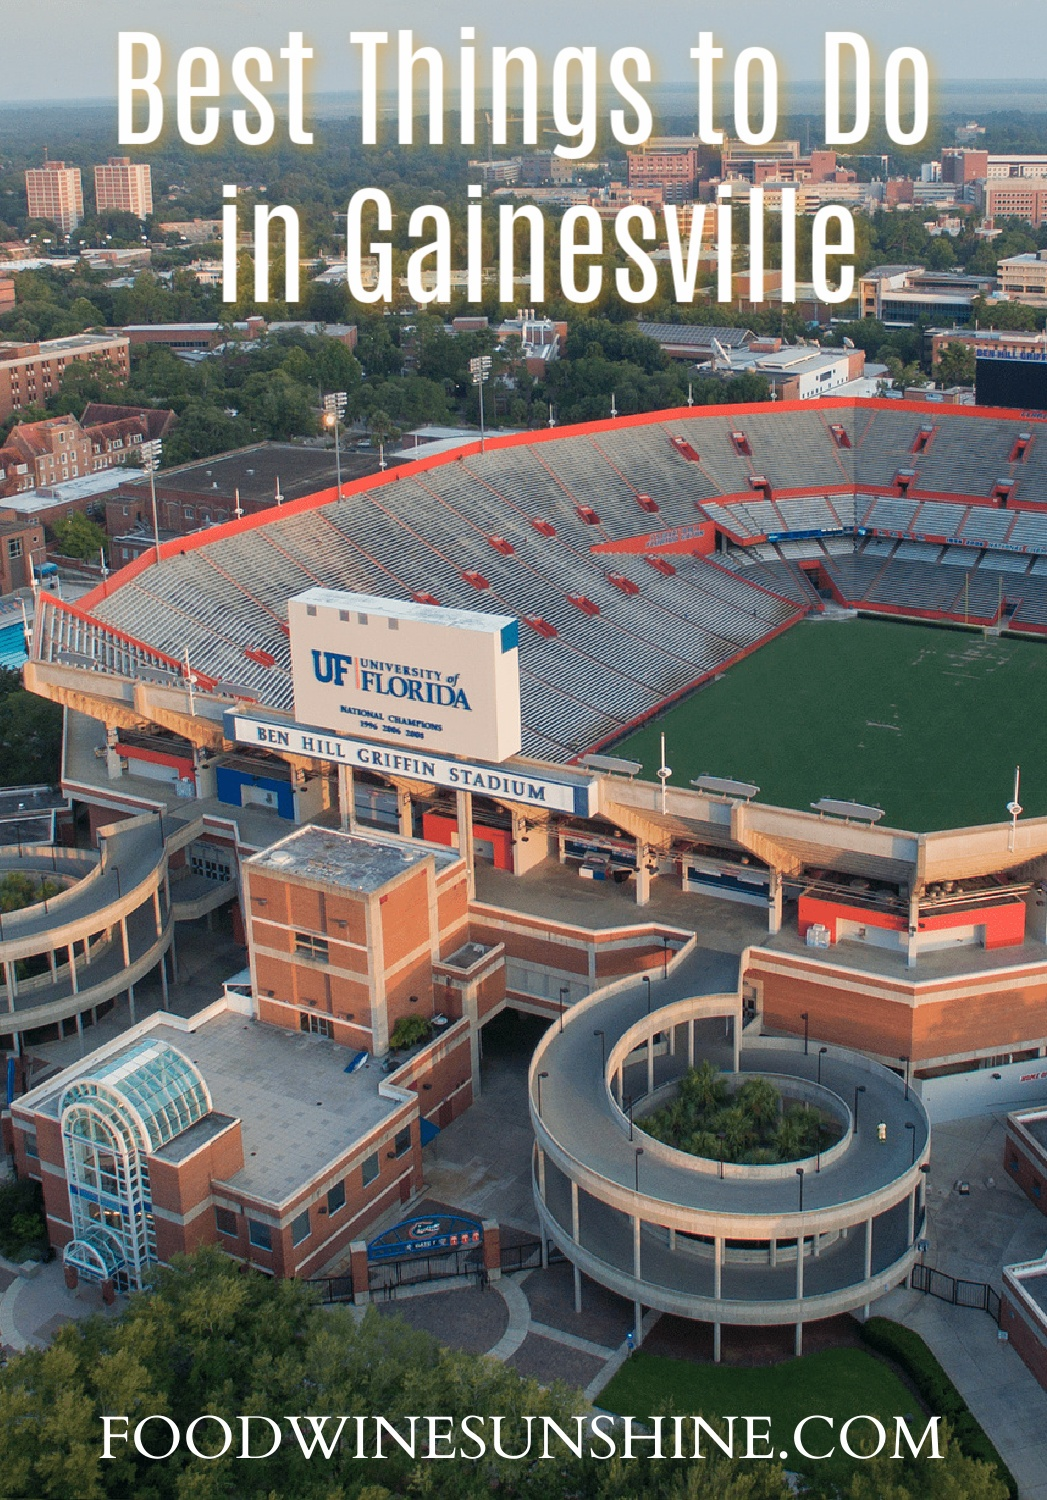 Best Things to Do in Gainesville